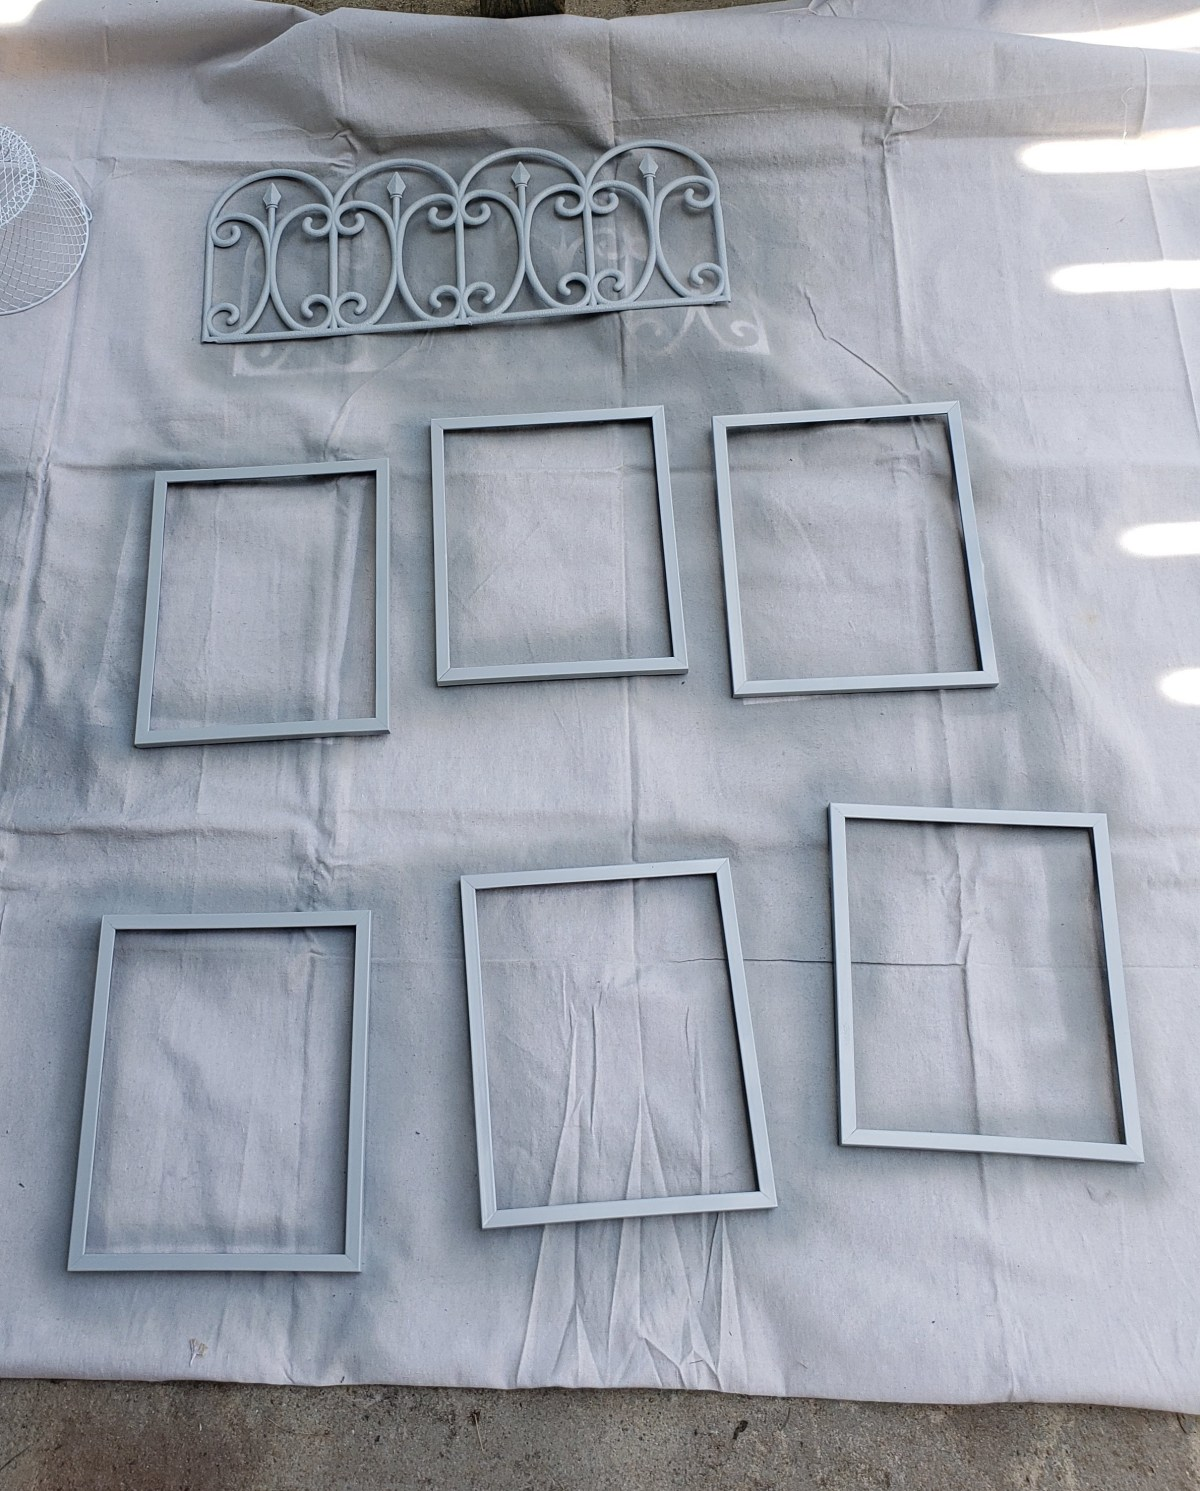 Paint the frames and garden edging on all sides